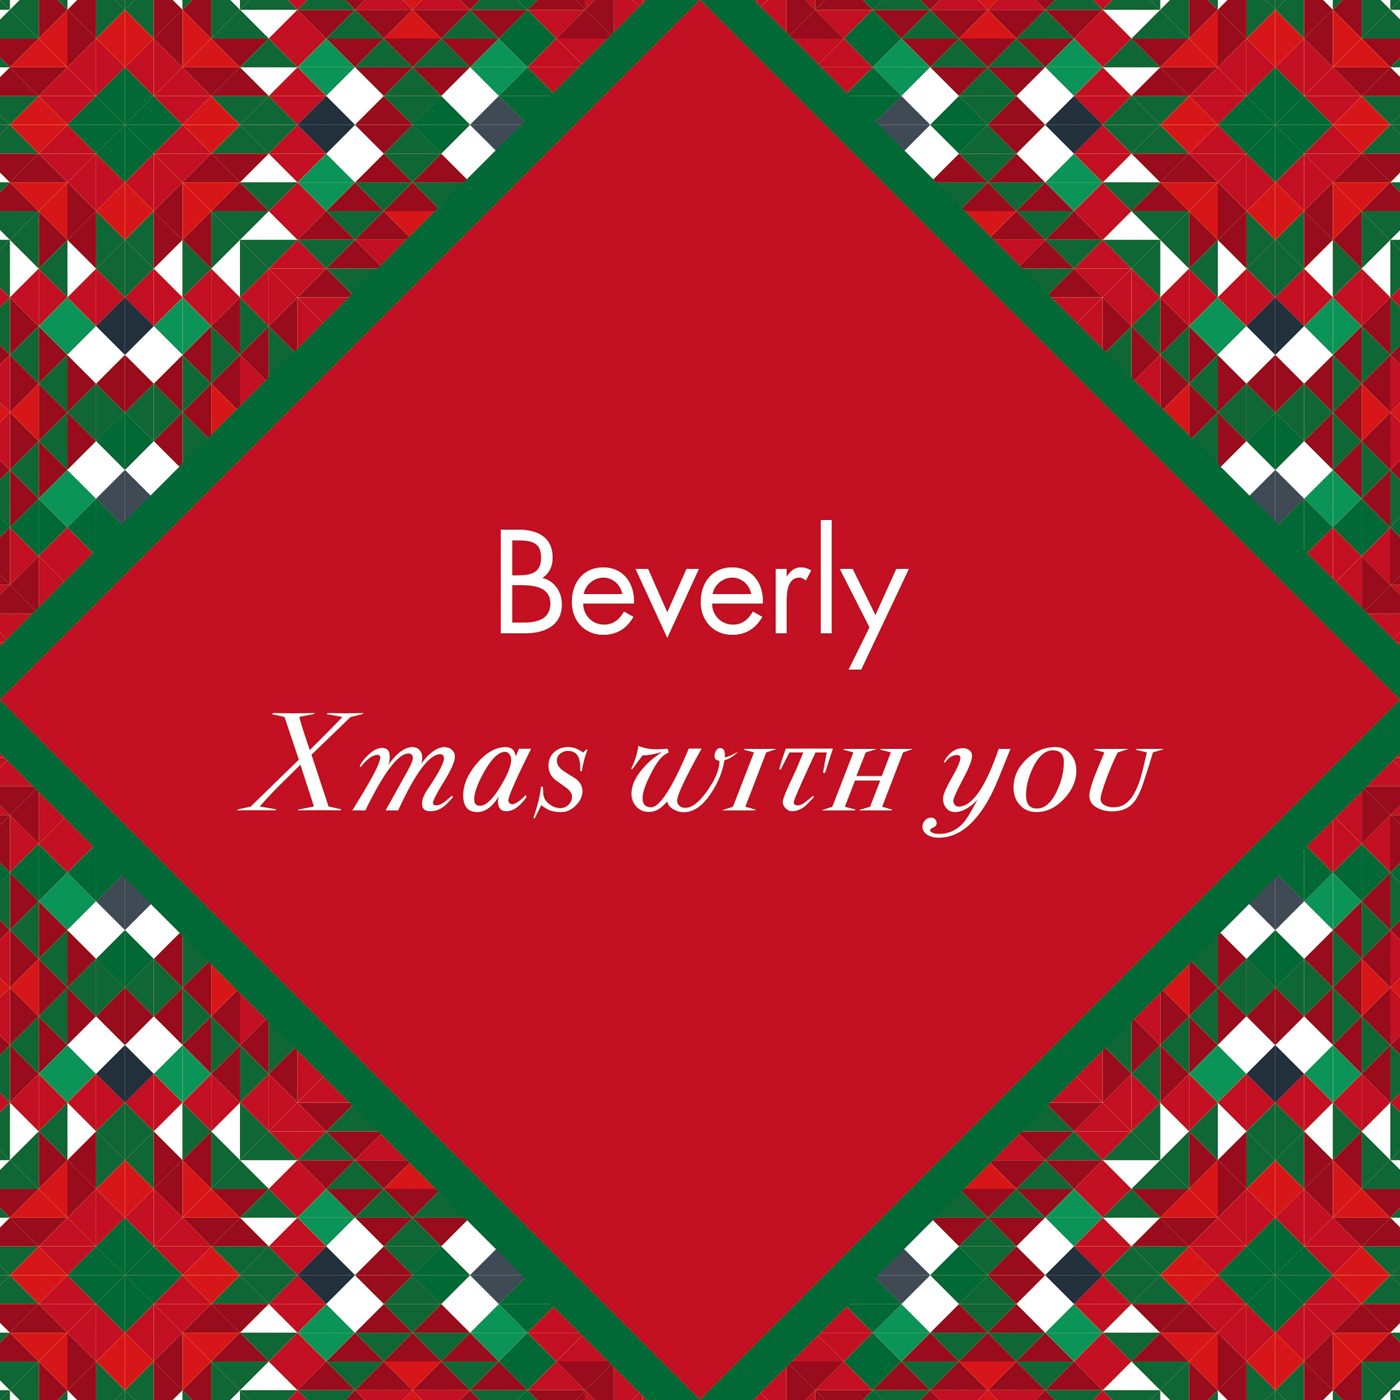 20190109.0653.2 Beverly - Xmas With You (FLAC) cover.jpg